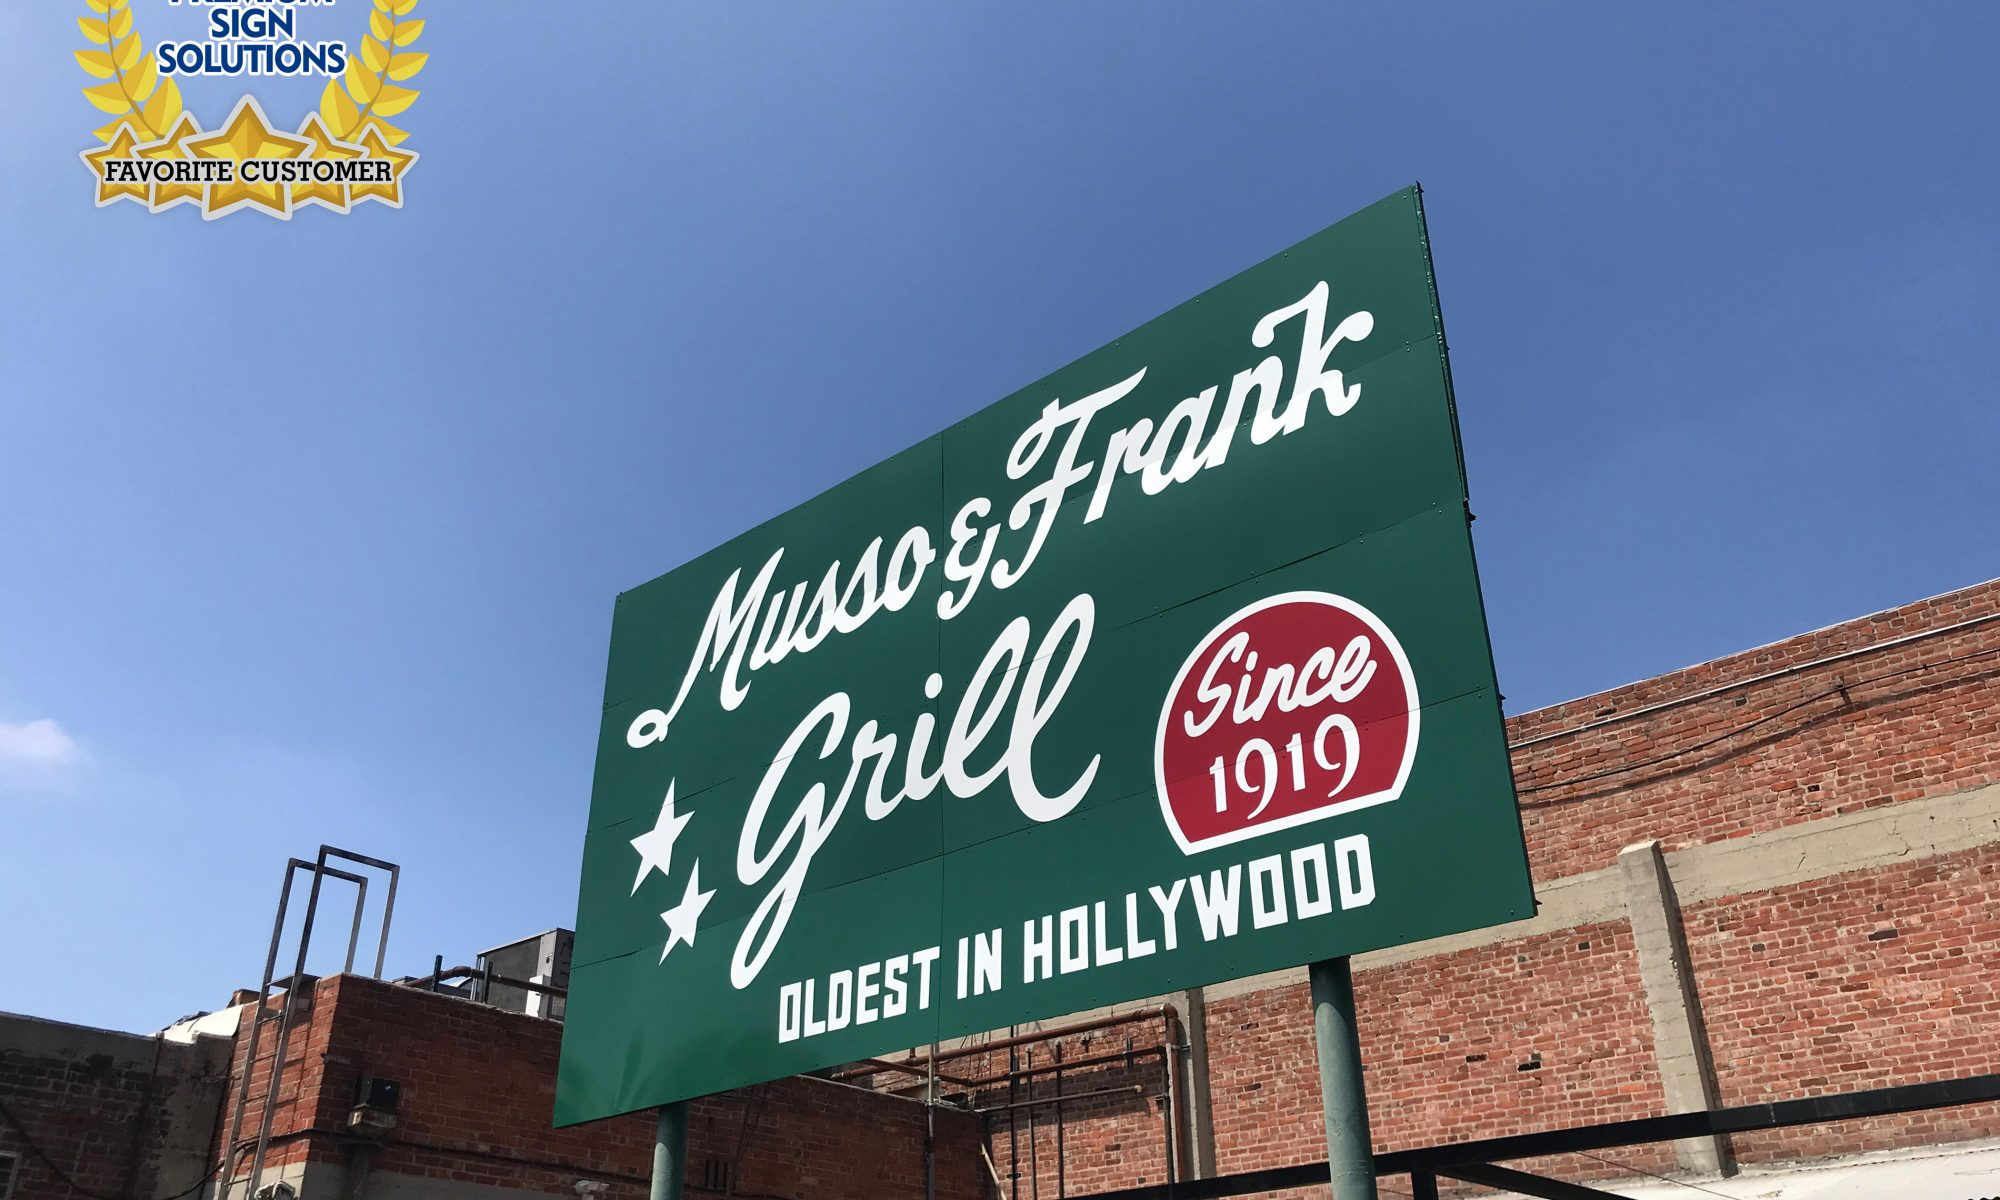 We definitely look forward to dining in Musso & Frank Grill when things get better!